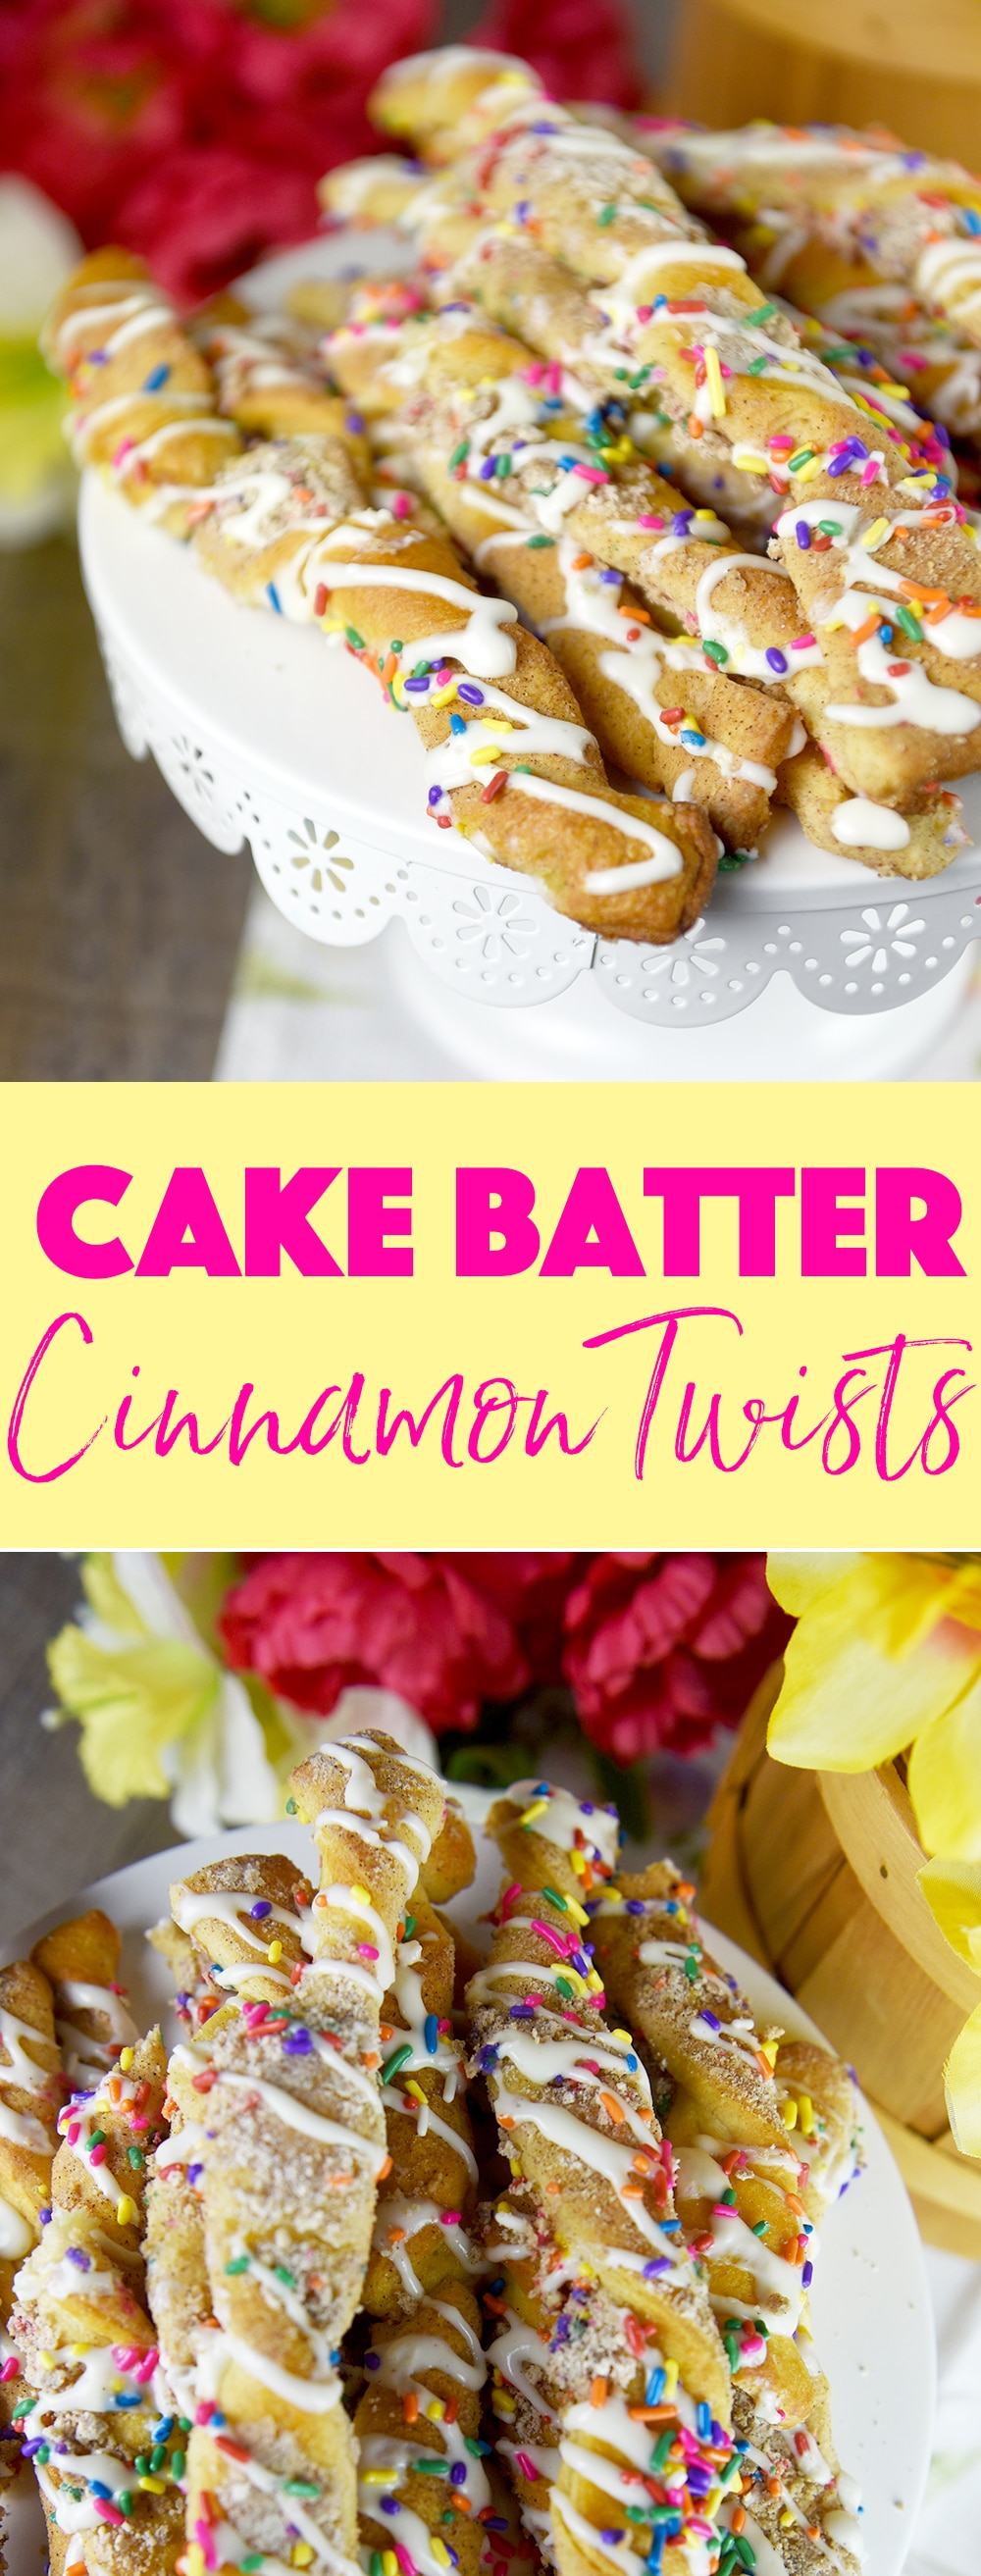 These Cake Batter Cinnamon Twists are super easy to make and are perfect for any springtime occasion.